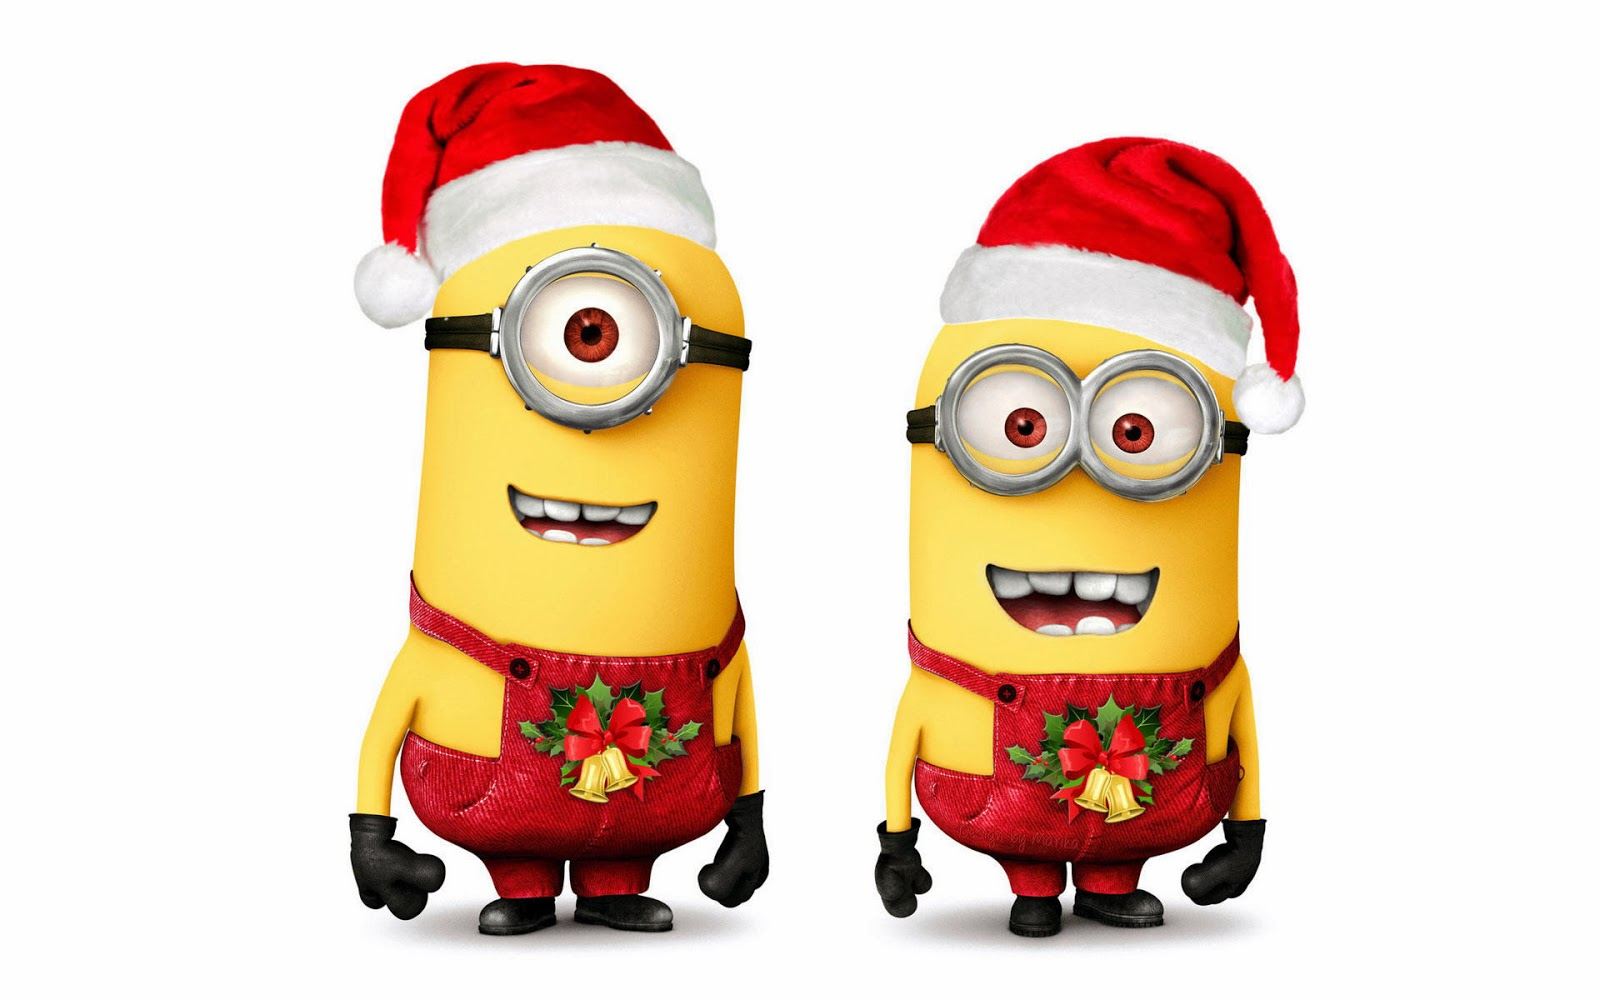 Minions images christmas speciall oh my fiesta in english for Crismas de navidad